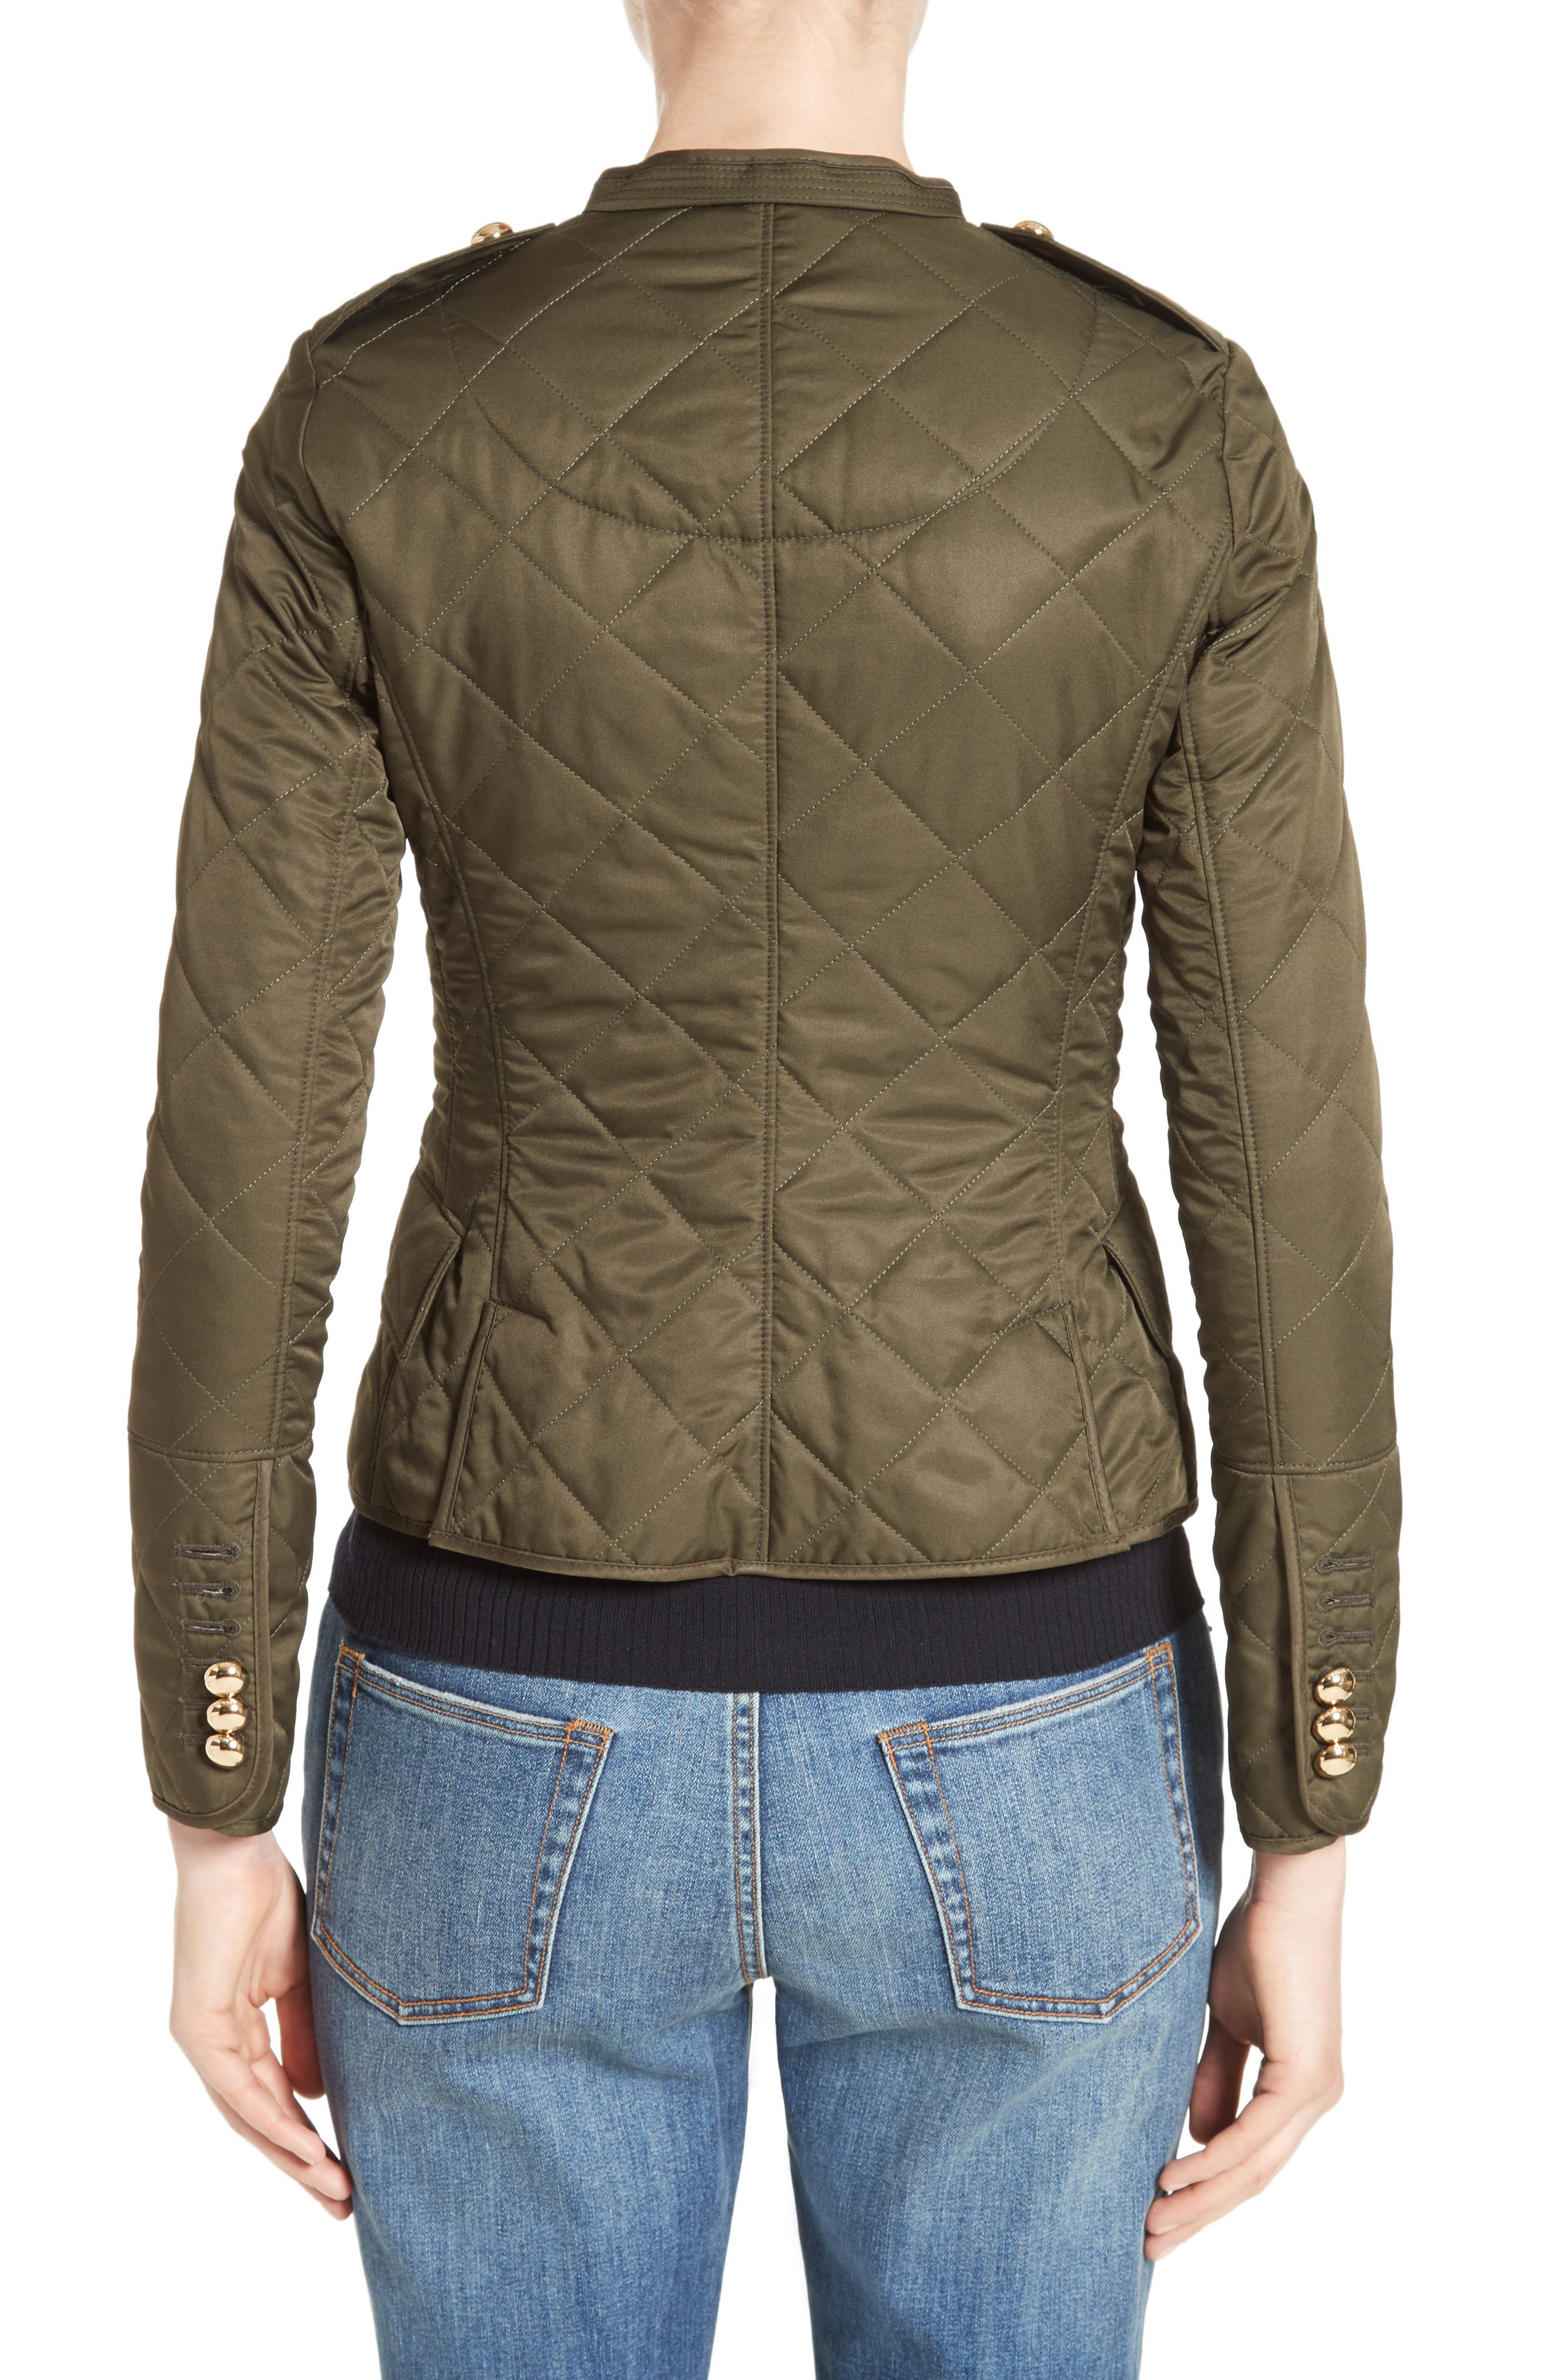 Boscastle Quilted Military Jacket,                             Alternate thumbnail 2, color,                             301